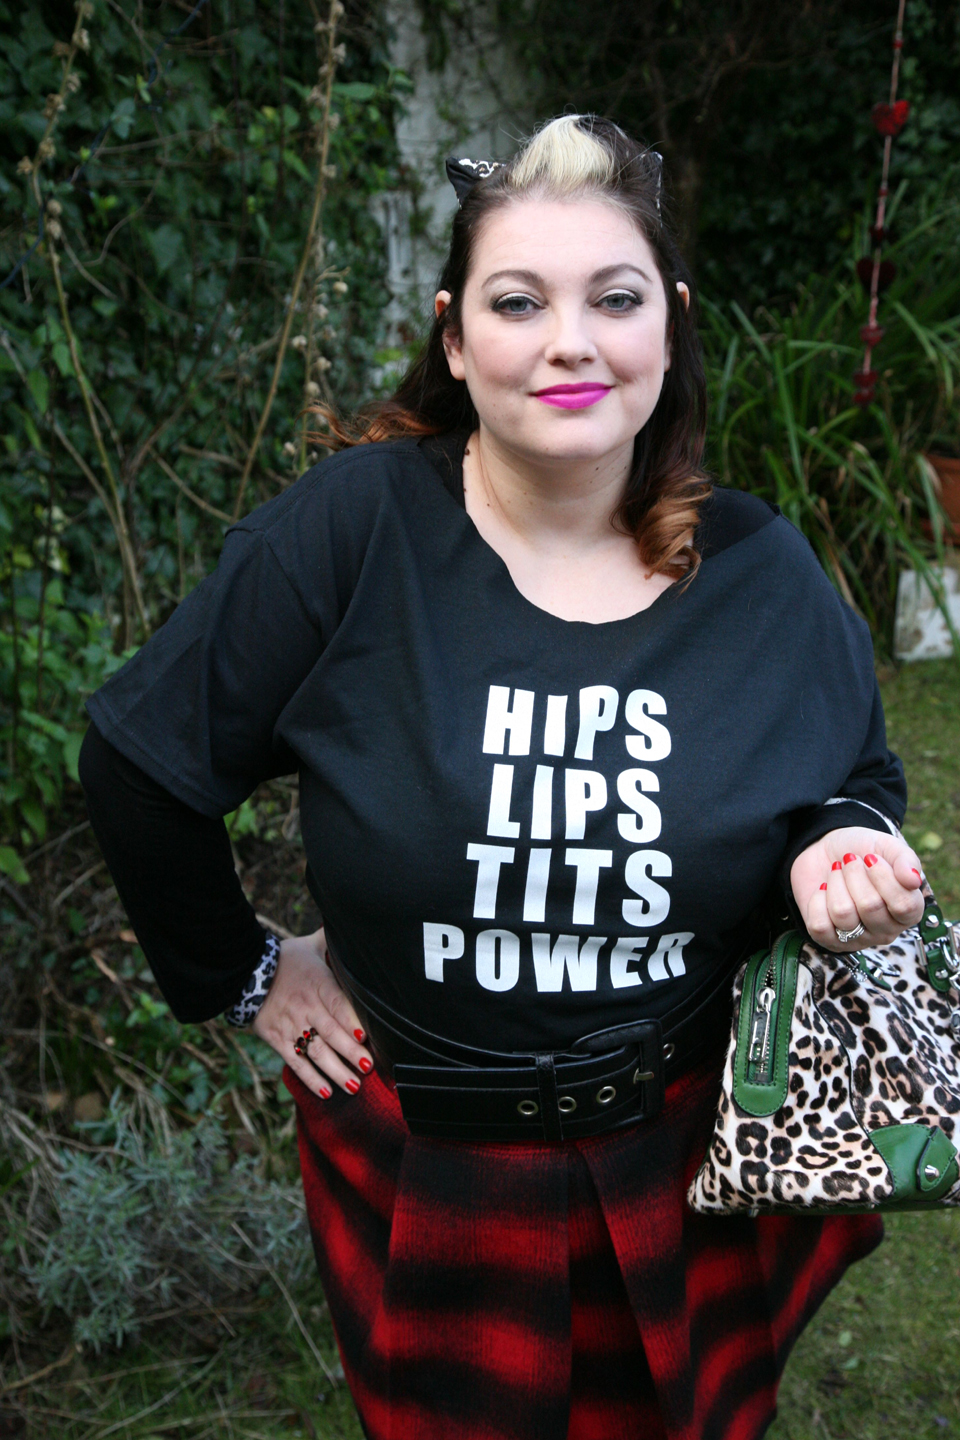 Hips, Lips, Tits, Power! 80's punk outfit inspired by